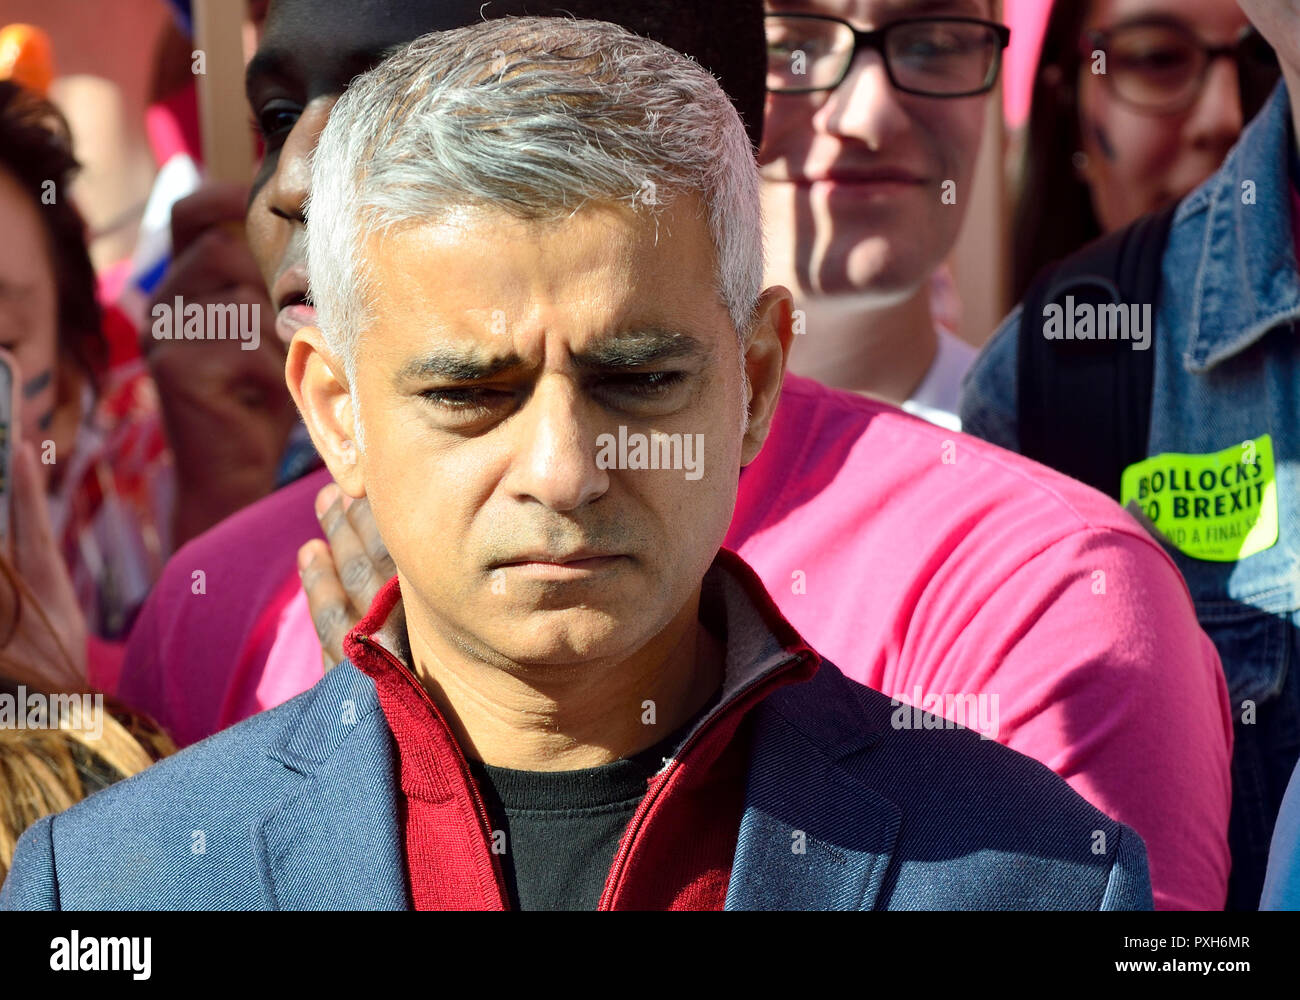 Sadiq Khan, Mayor of London, at the start of the People's Vote March in support of a second Brexit referendum, London, 20th October 2018 - Stock Image